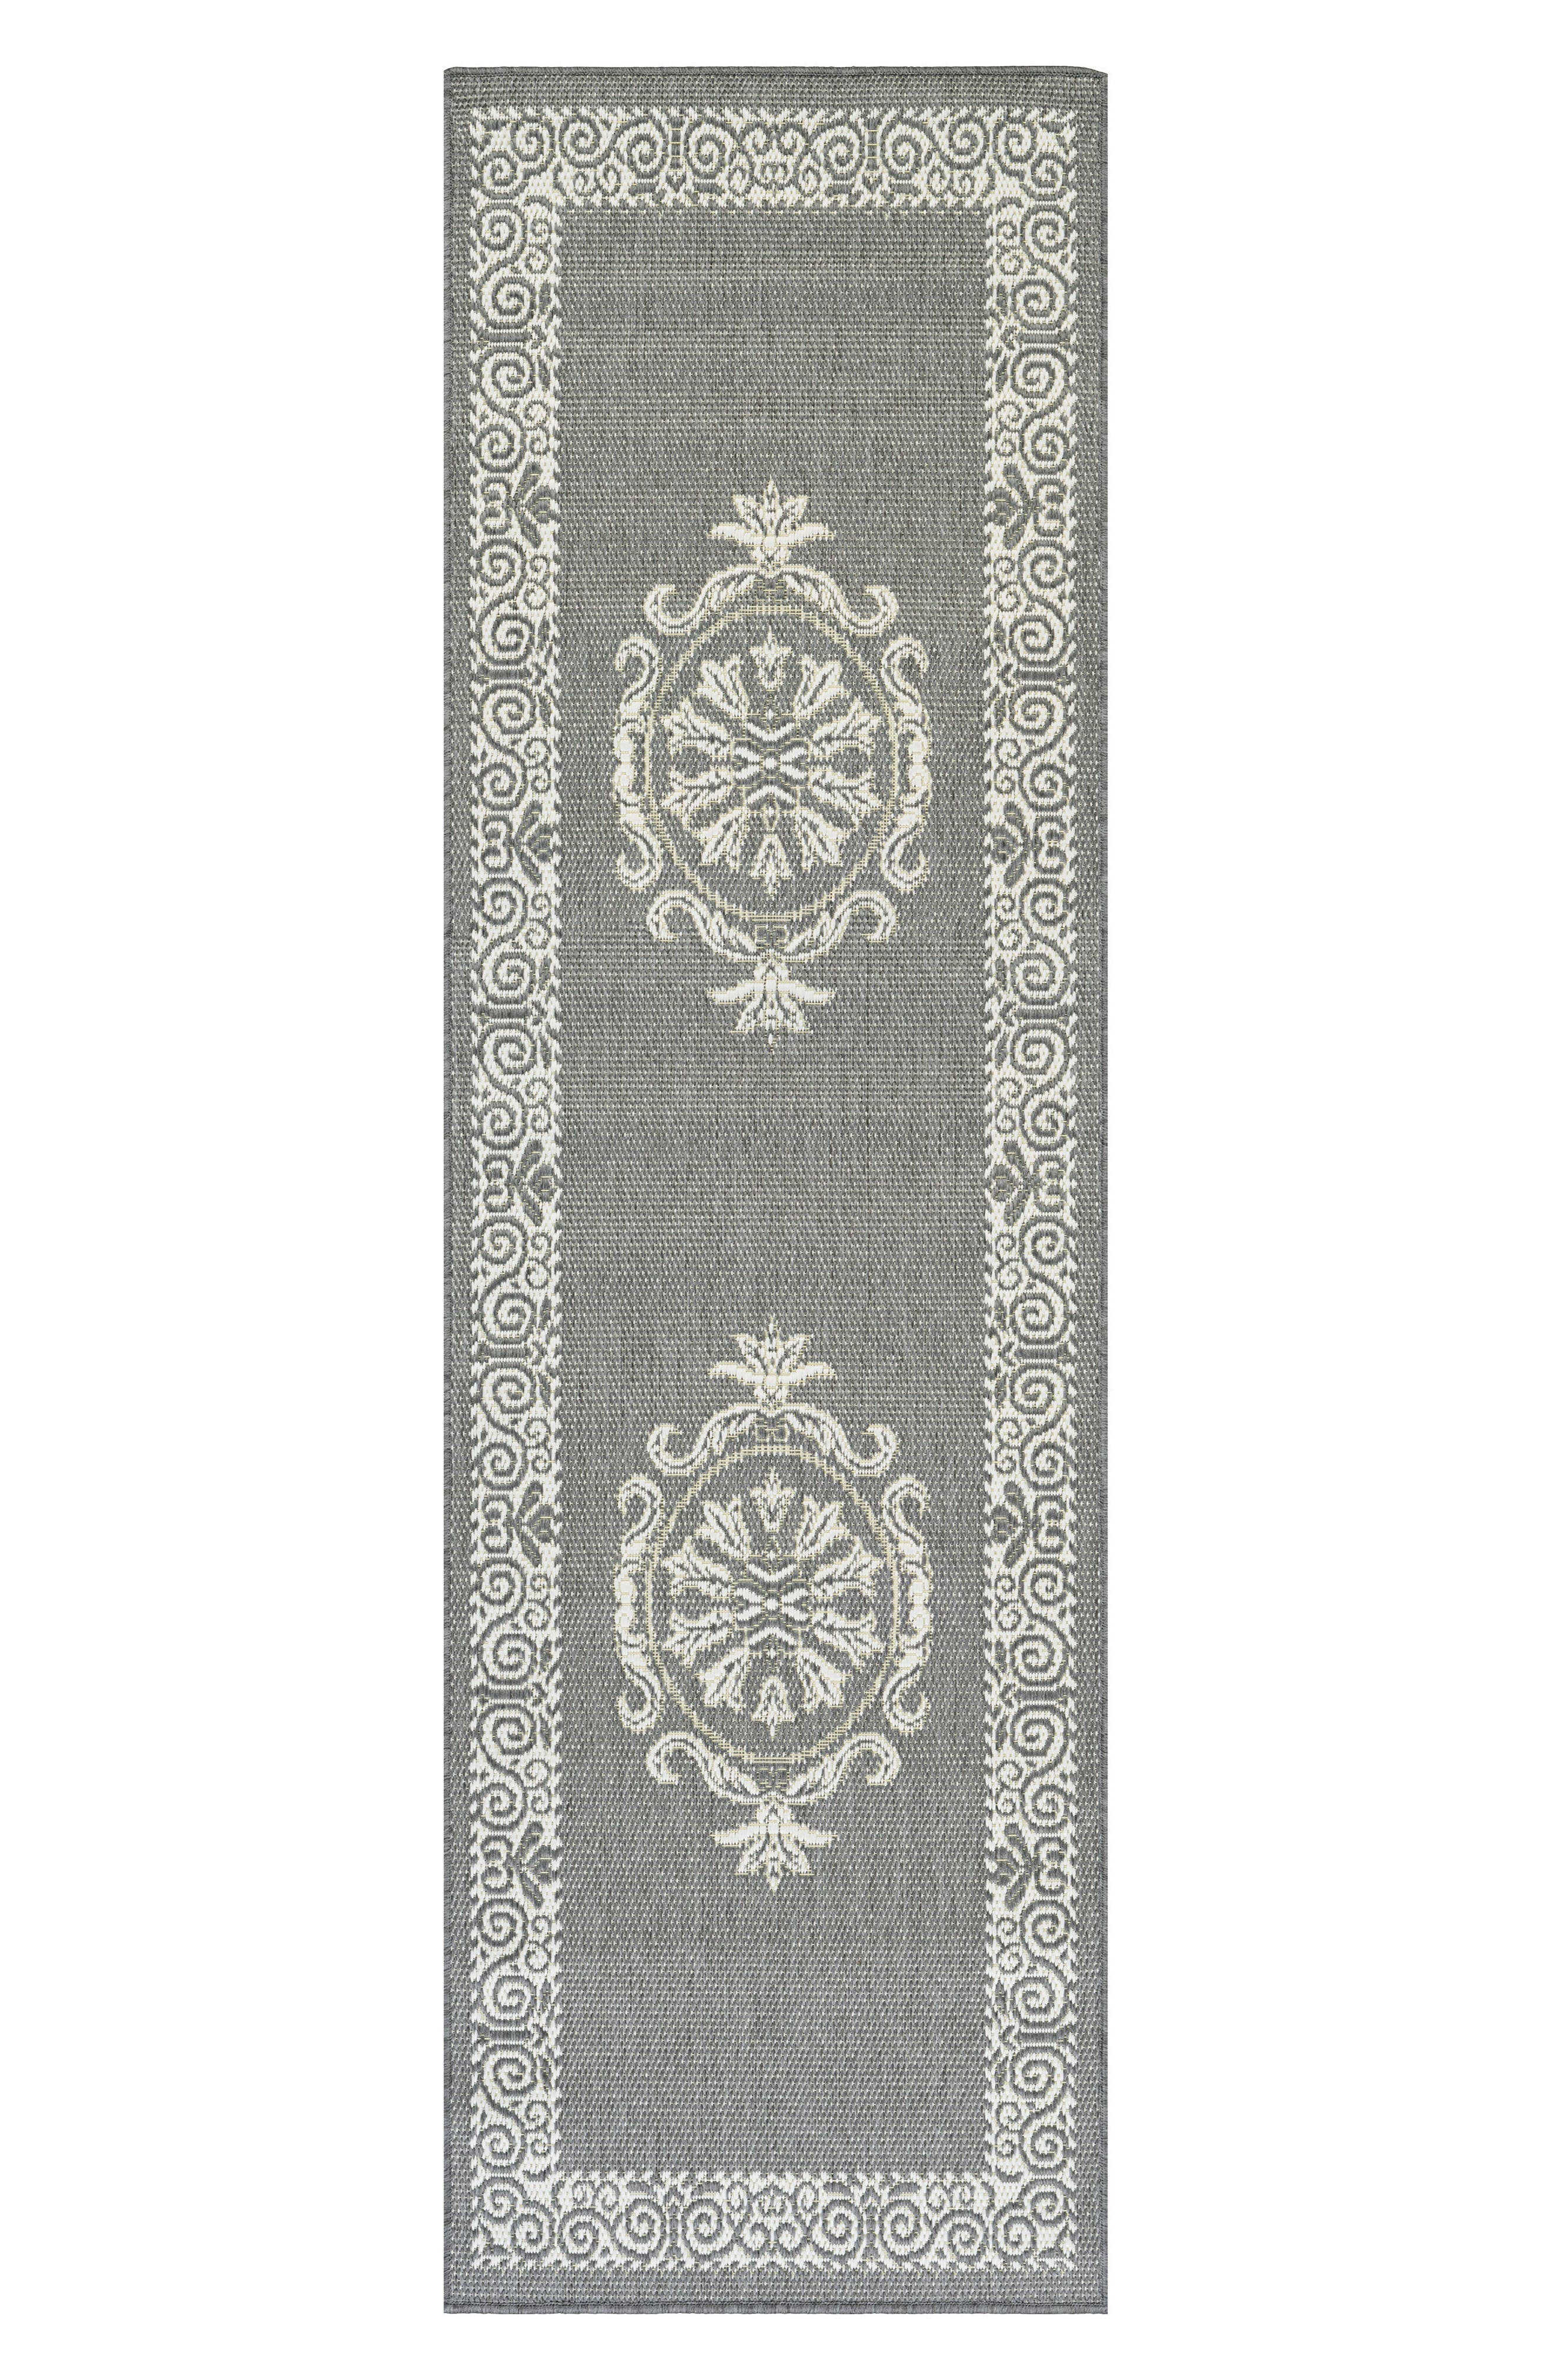 Antique Medallion Indoor/Outdoor Rug,                             Alternate thumbnail 2, color,                             Grey/ White